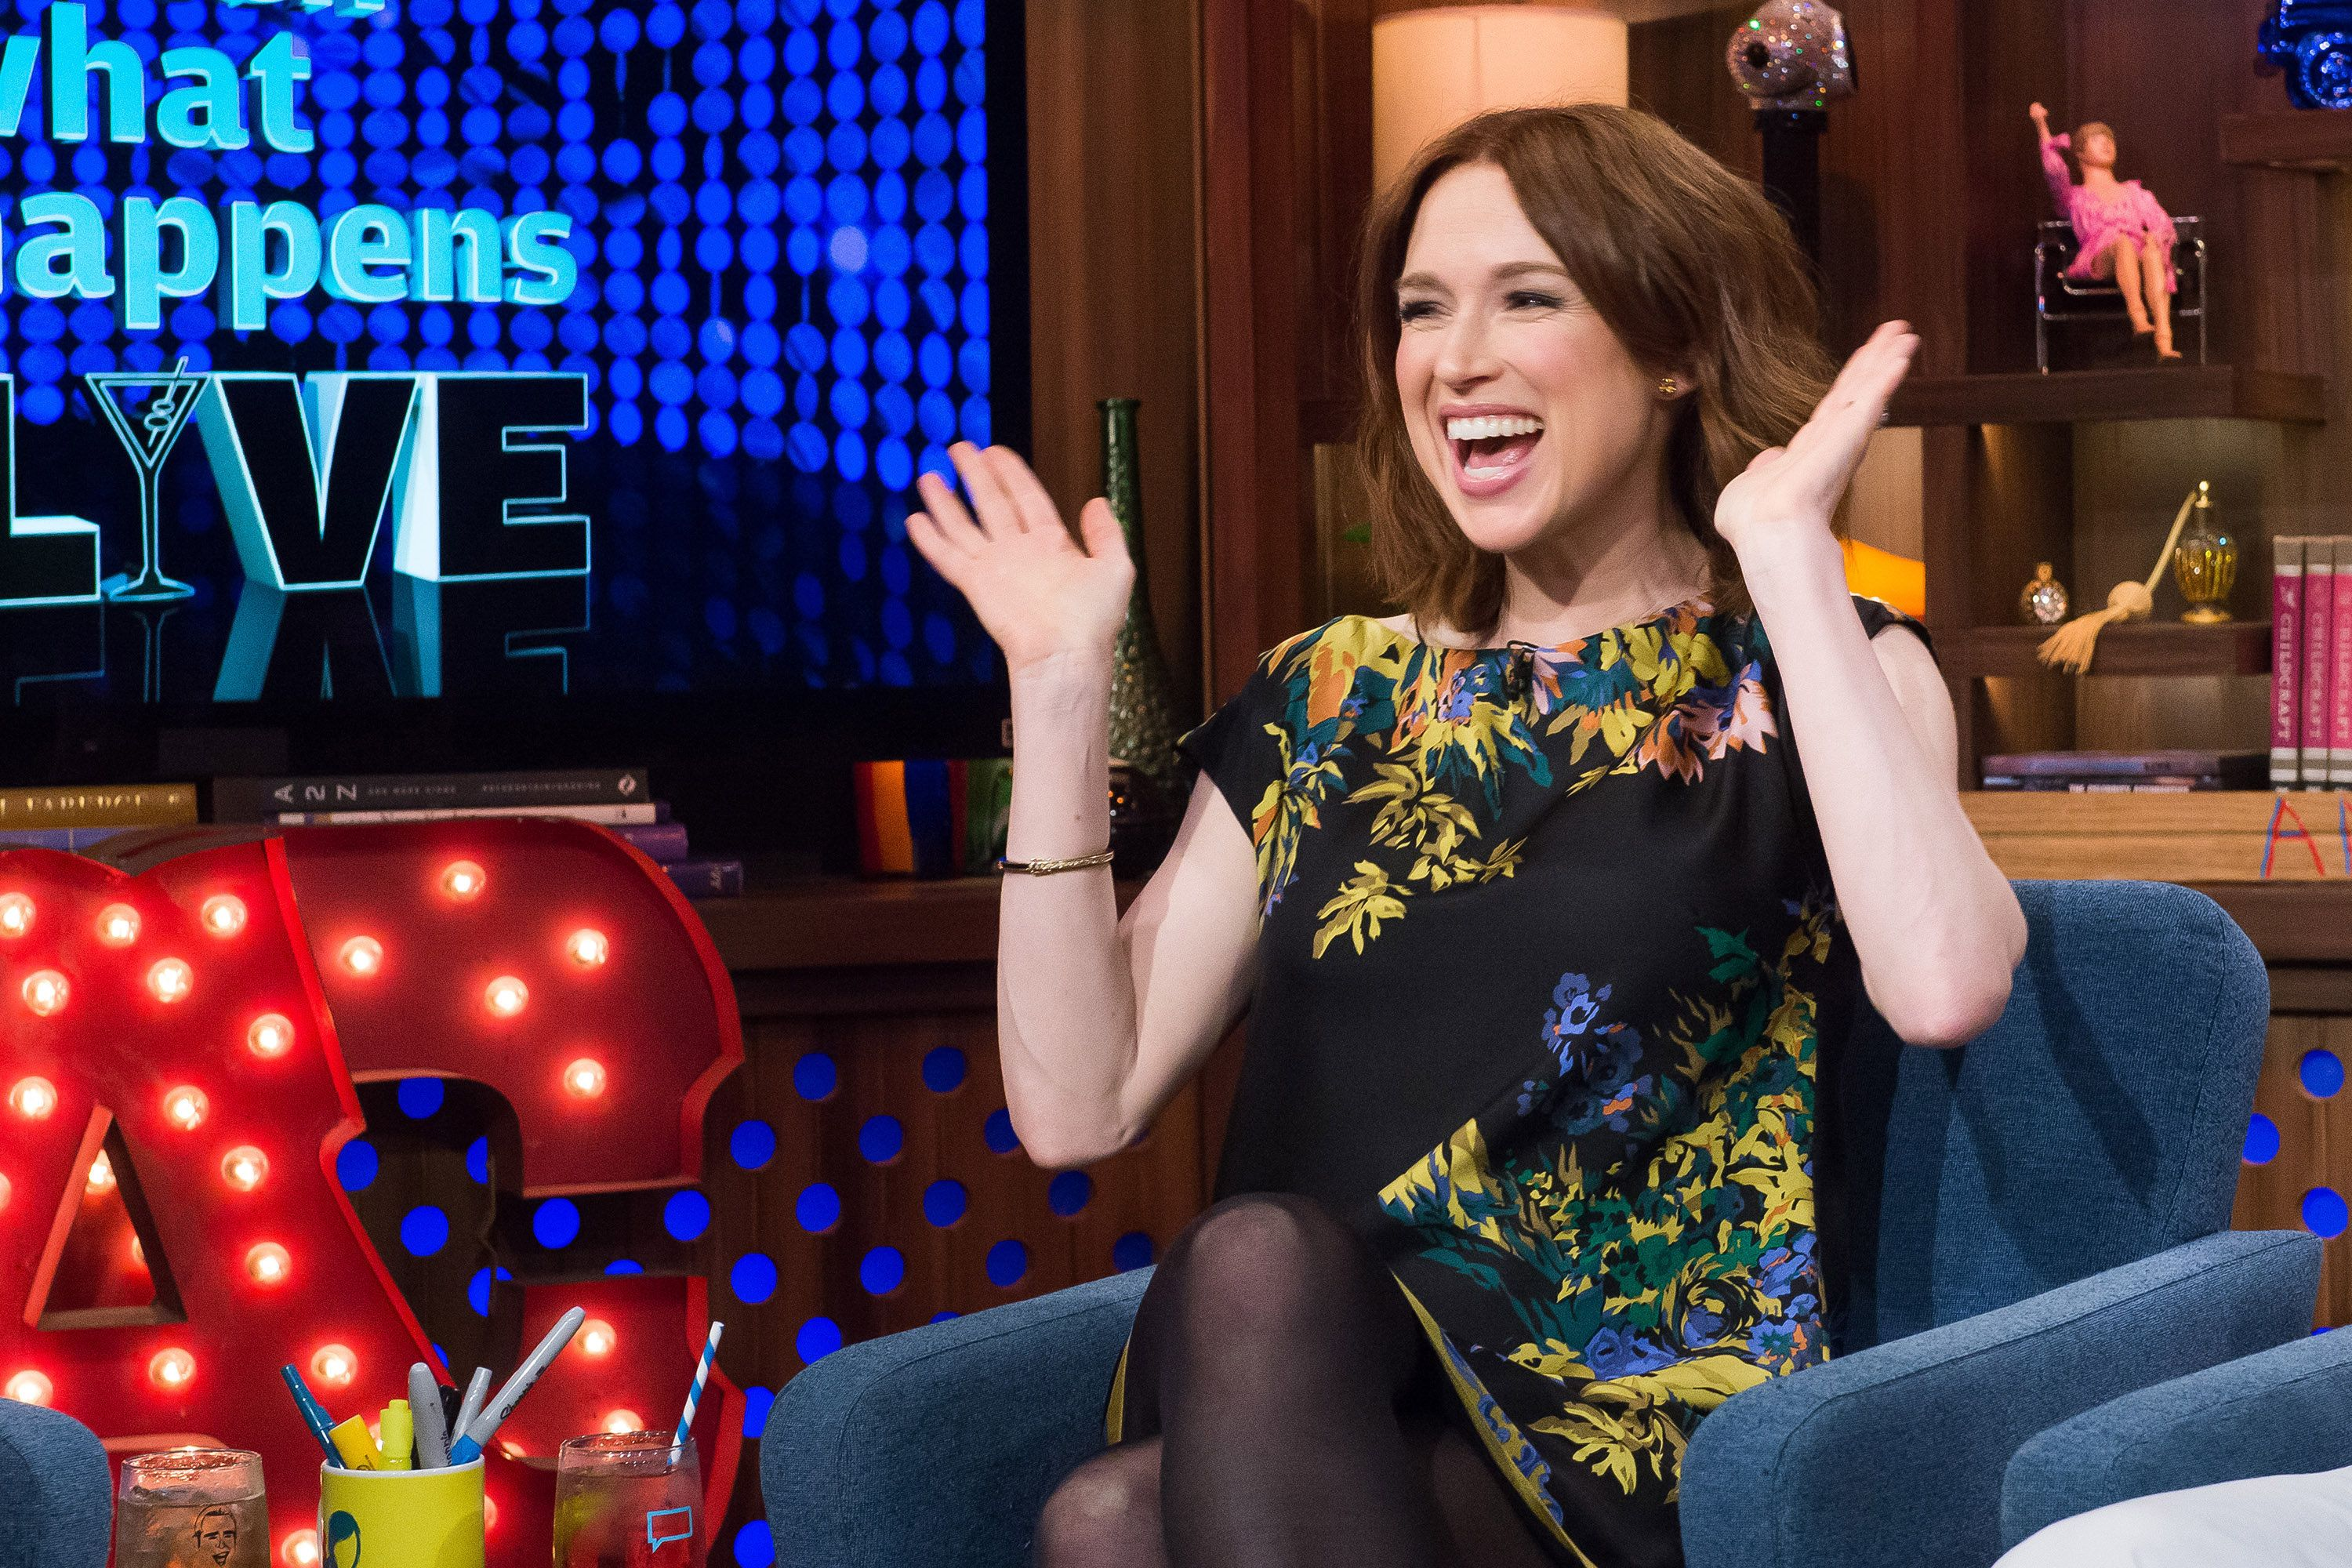 WATCH WHAT HAPPENS LIVE -- Pictured: Ellie Kemper -- (Photo by: Charles Sykes/Bravo/NBCU Photo Bank via Getty Images)